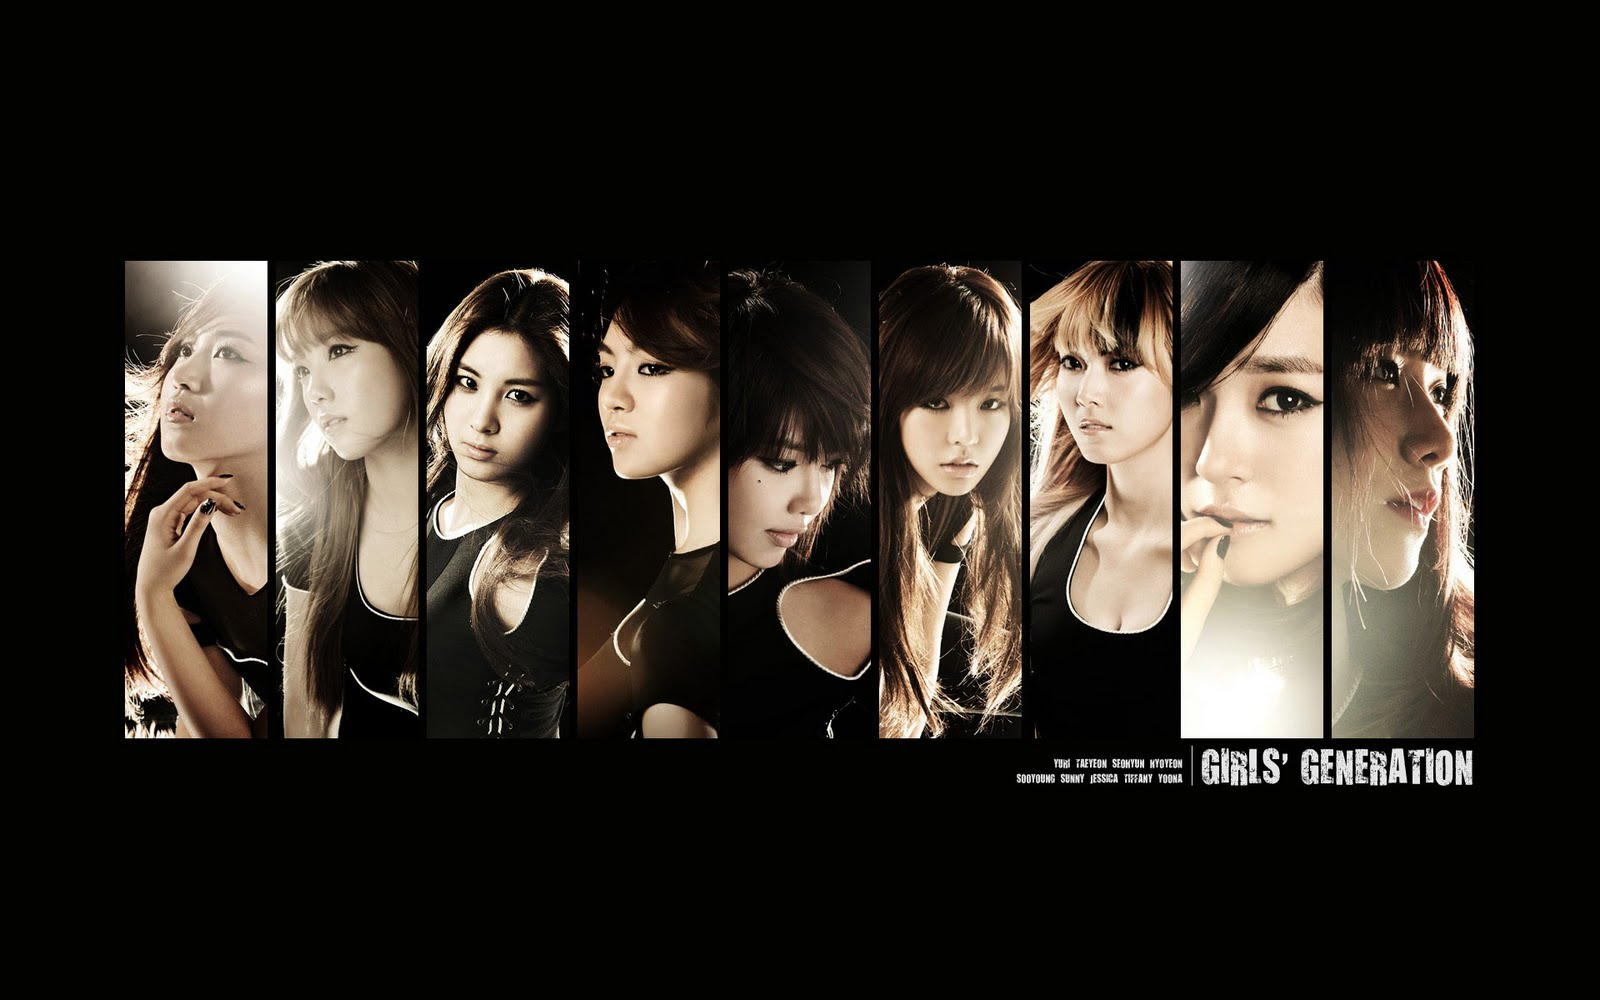 Girls generation hd wallpapers snsd girls generation hd wallpapers